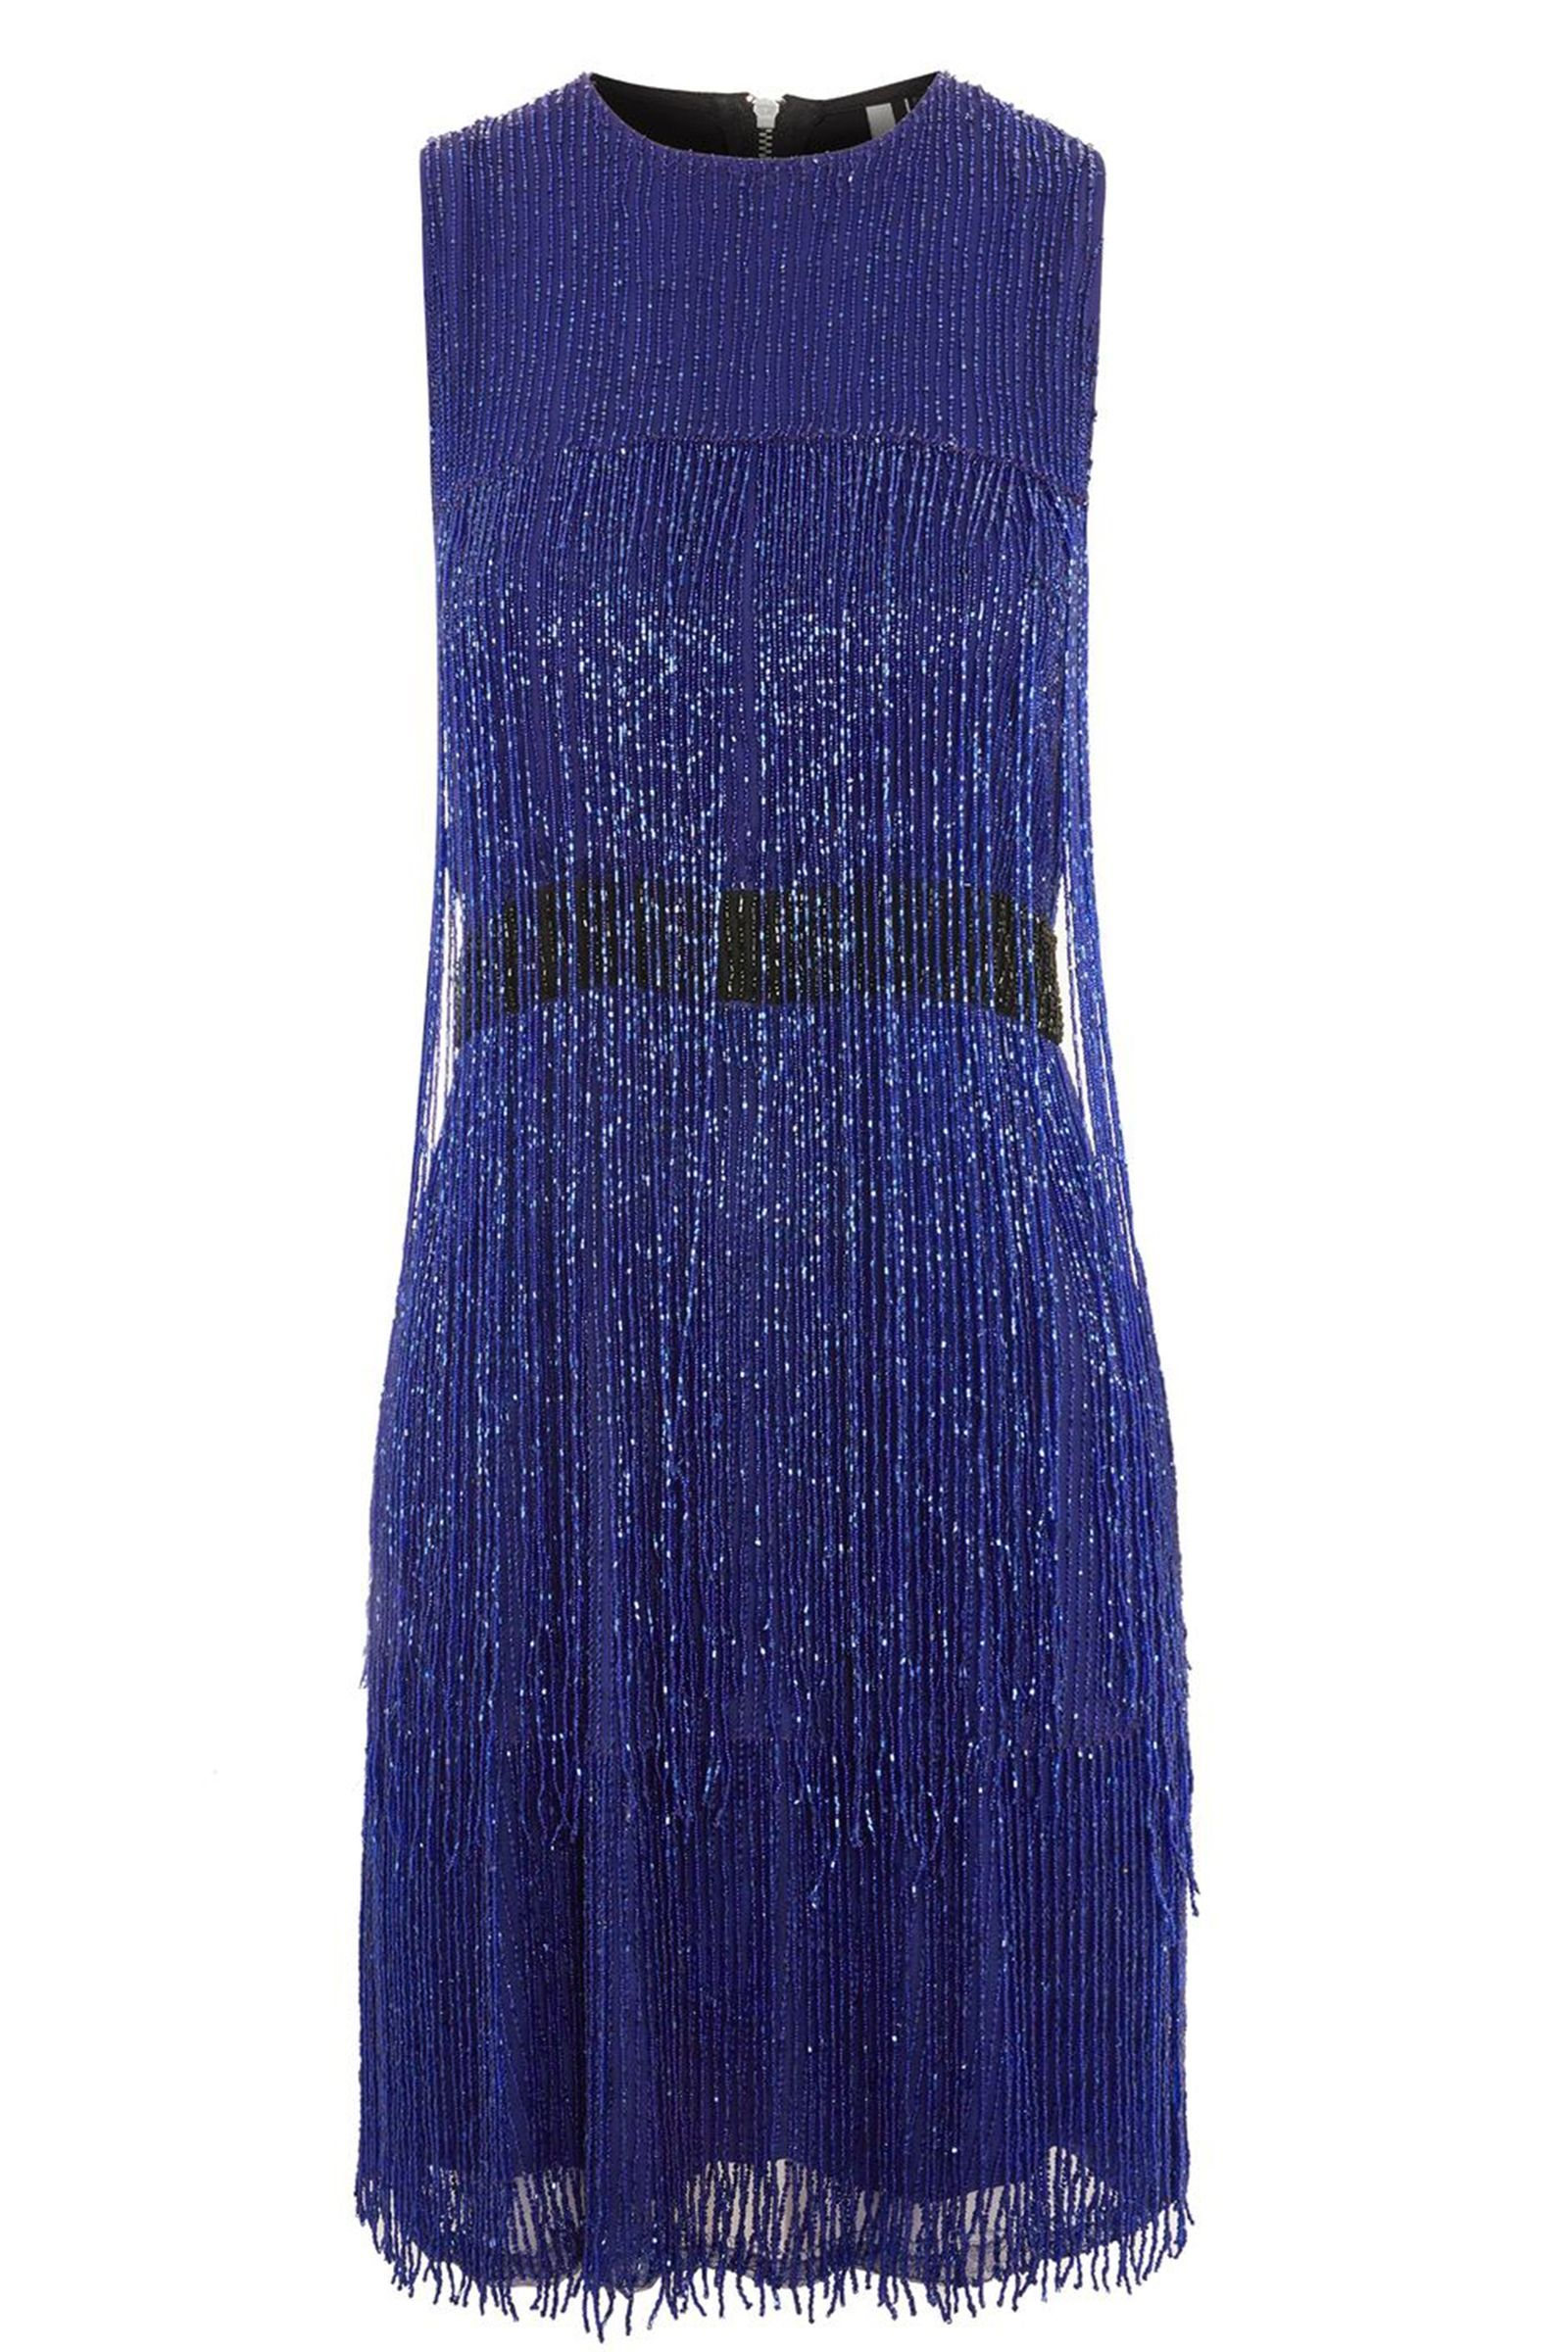 Dresses to wear to a destination wedding as a guest   Dresses to Wear to a Winter Wedding  Winter weddings st